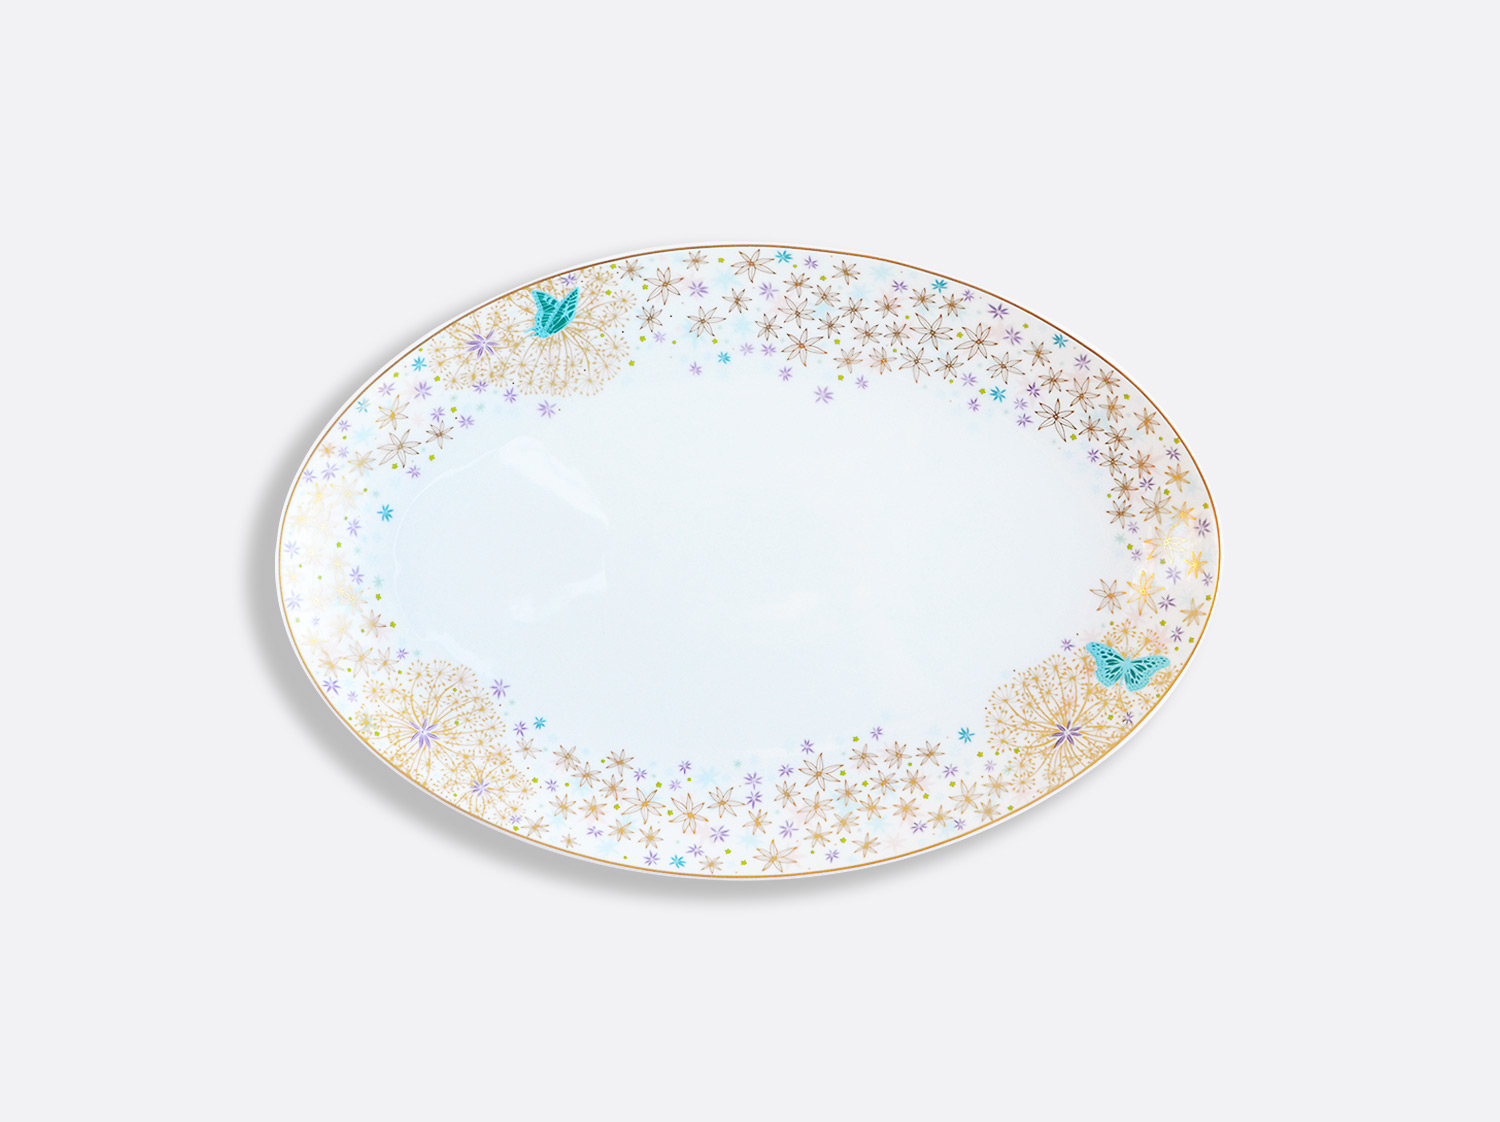 Plat ovale 33 cm en porcelaine de la collection FÉERIE - MICHAËL CAILLOUX Bernardaud